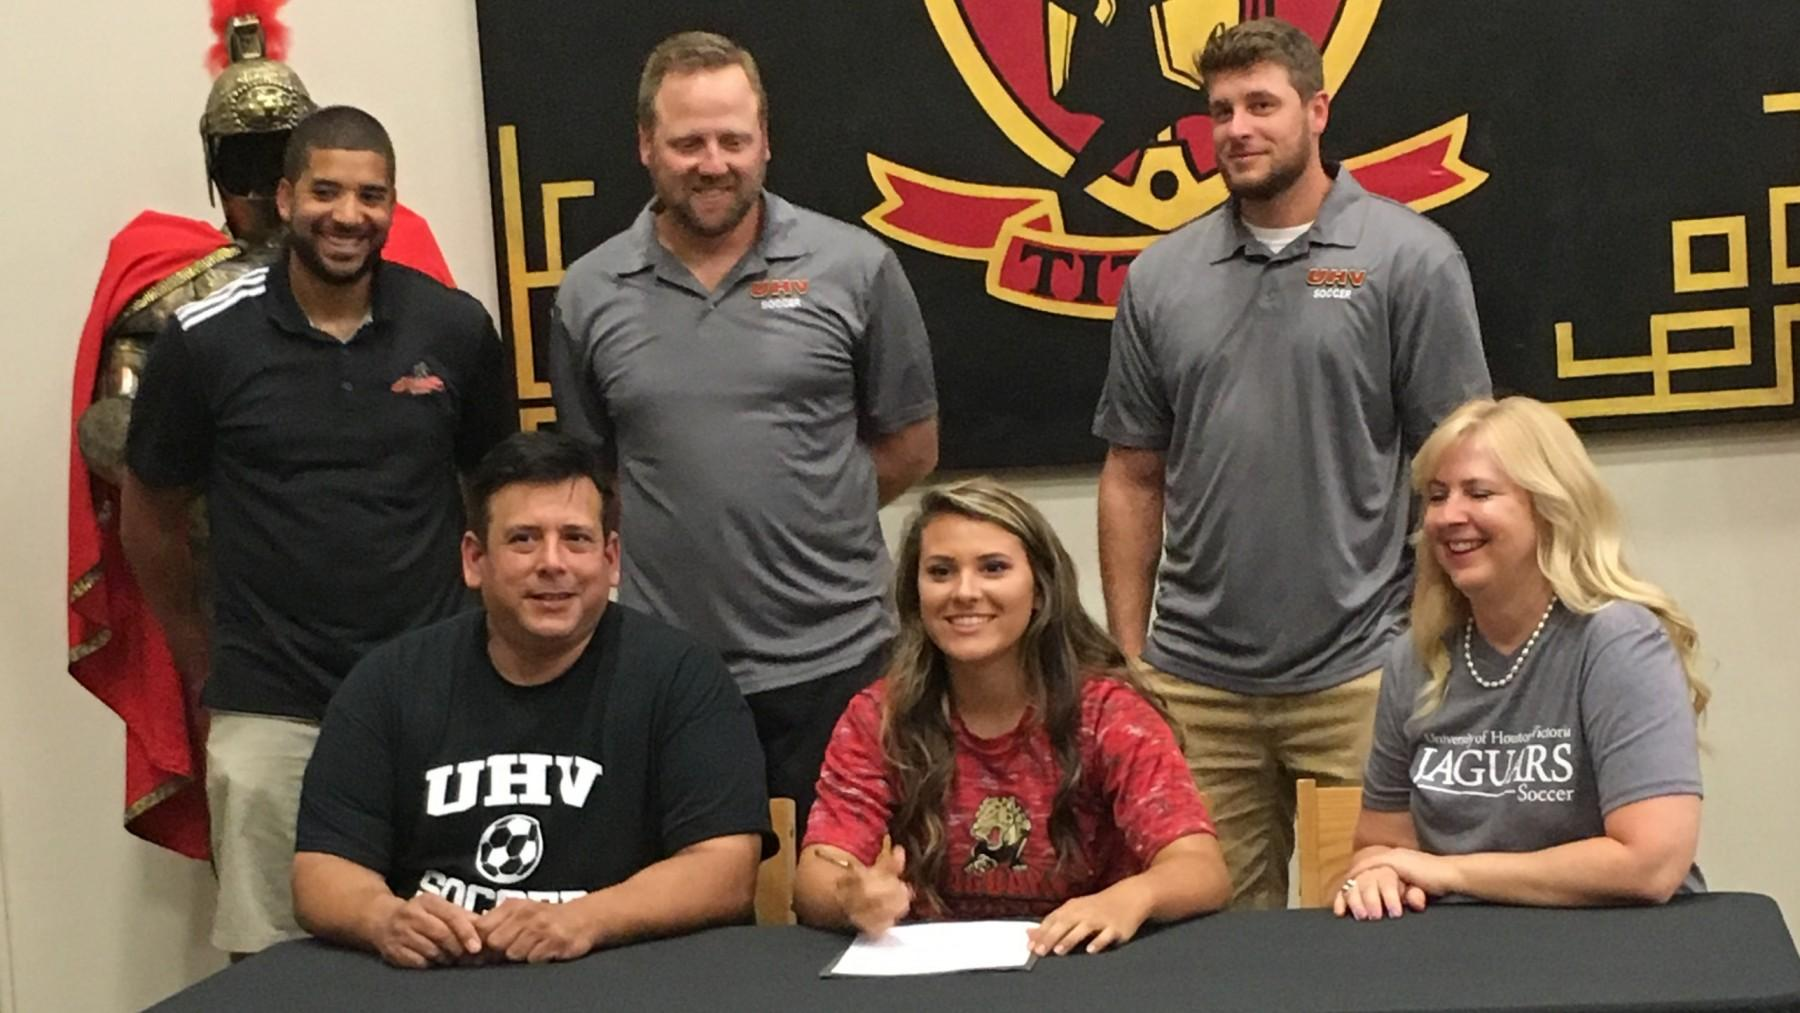 Victoria East senior signs with UHV